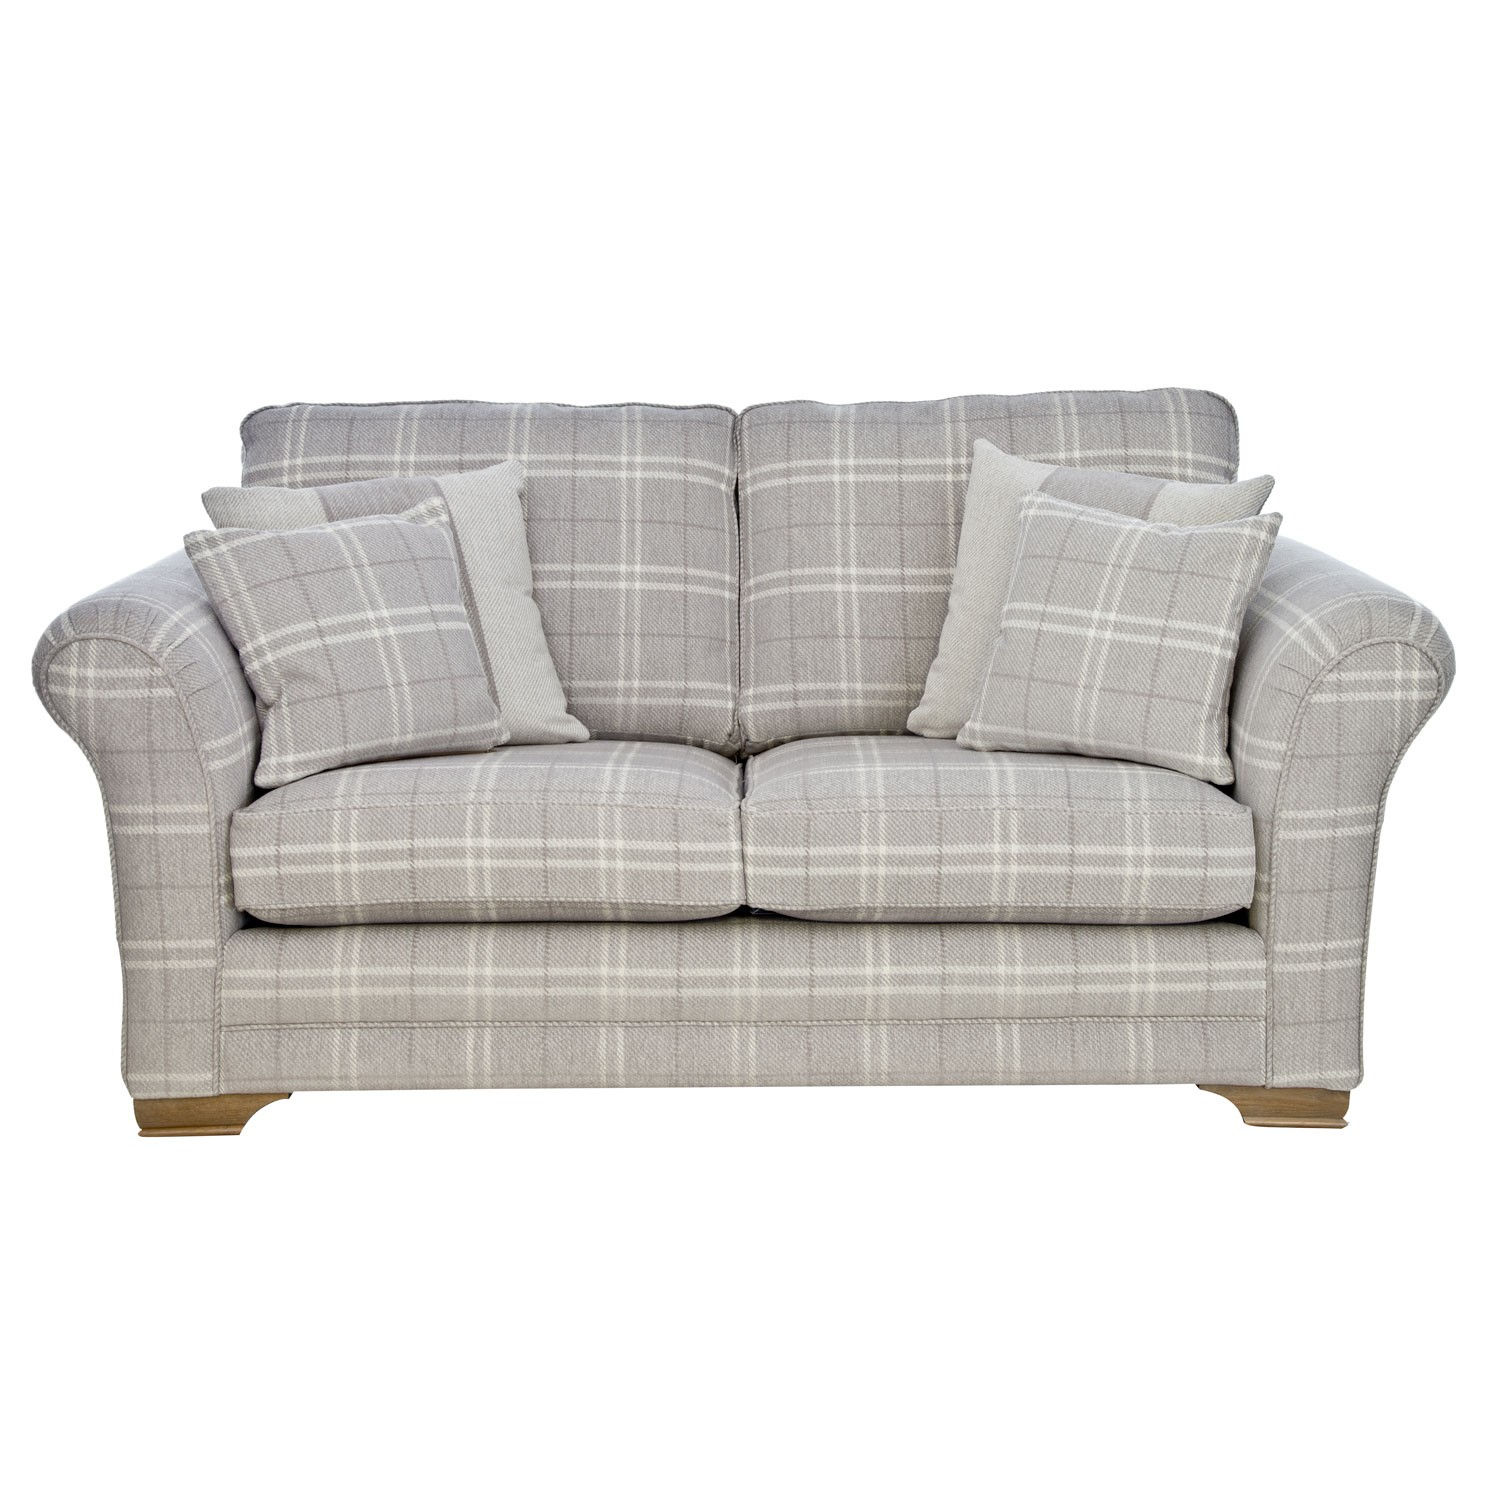 Terrific Georgia Two Seater Fabric Sofa Small Squirreltailoven Fun Painted Chair Ideas Images Squirreltailovenorg